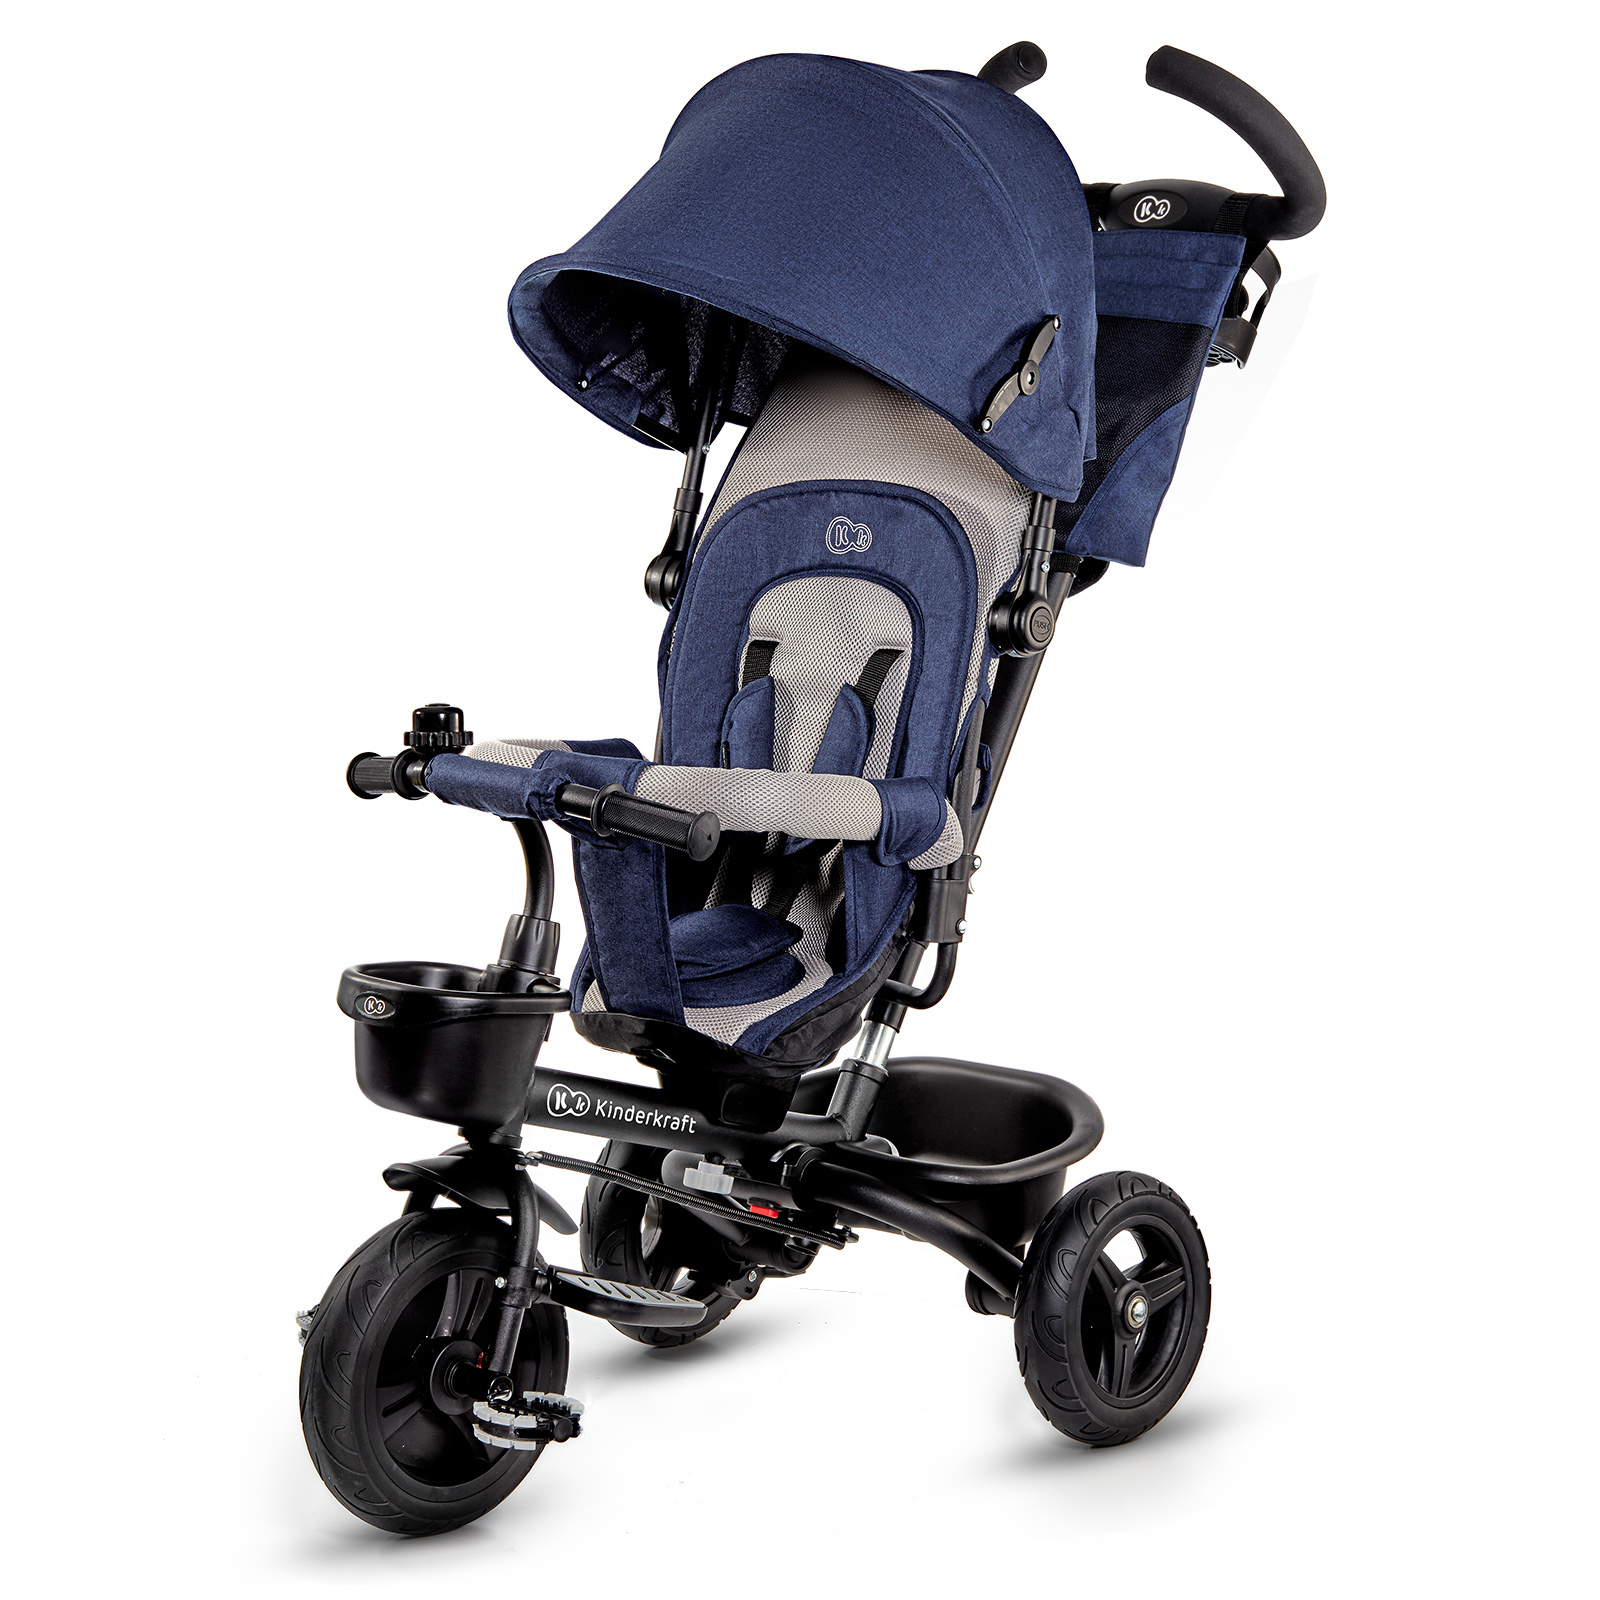 Велосипед Kinderkraft Aveo Blue складной